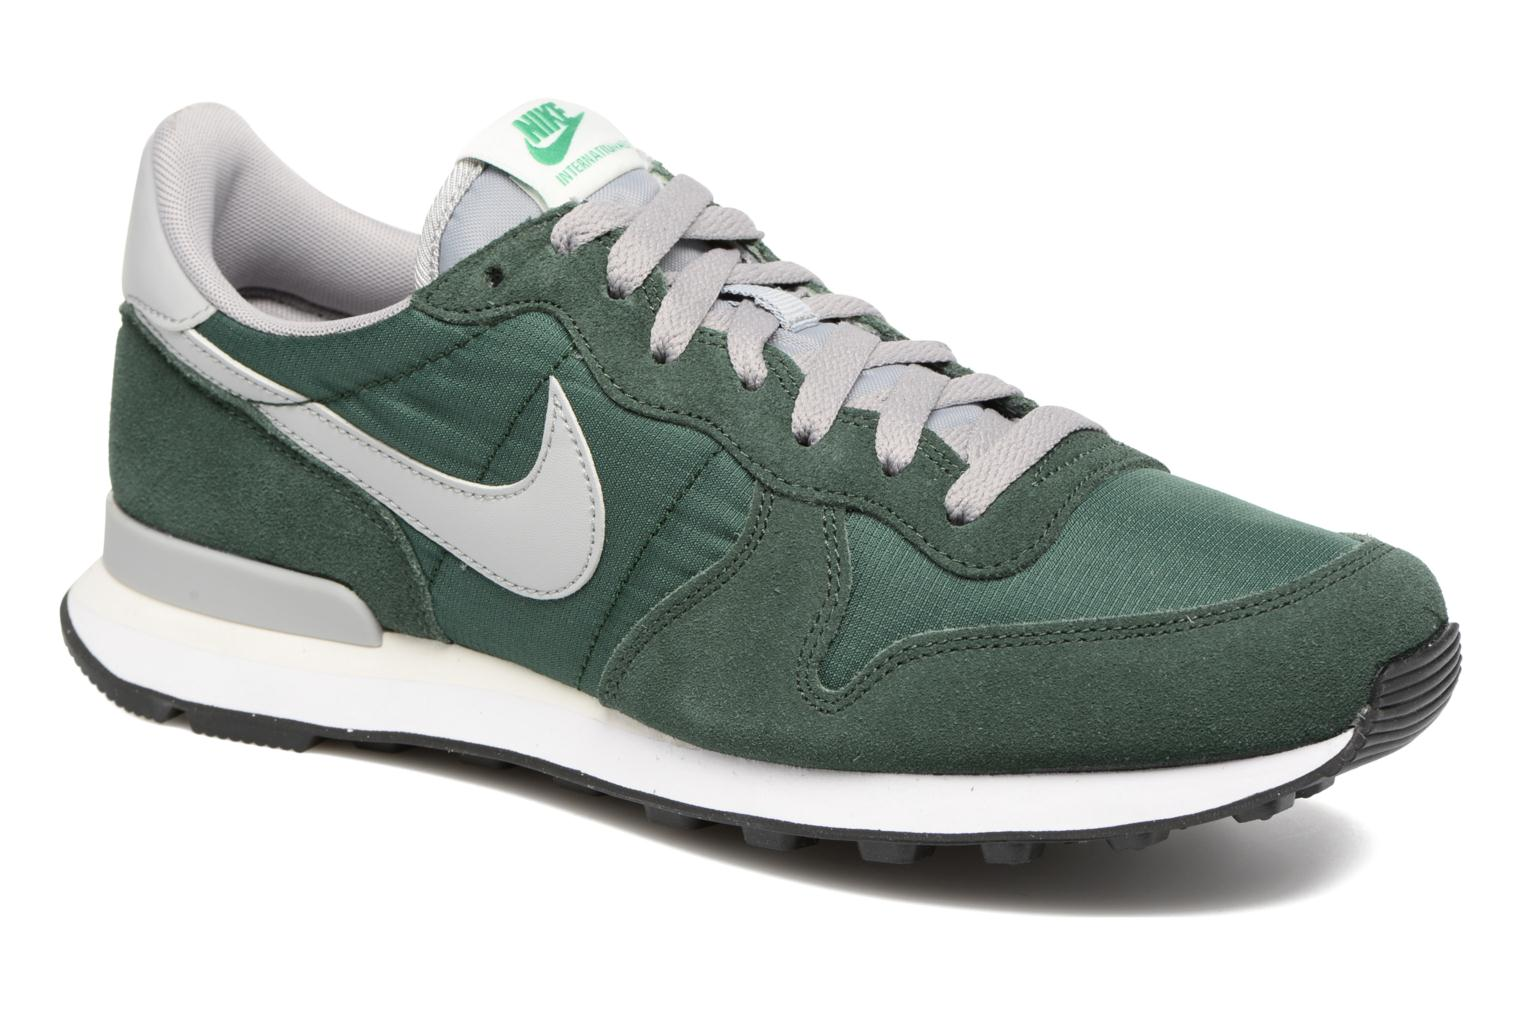 ... great site for all sneakers half off d272a 56d65 Baskets Nike Nike Internationalist Vert vue détailpaire ...